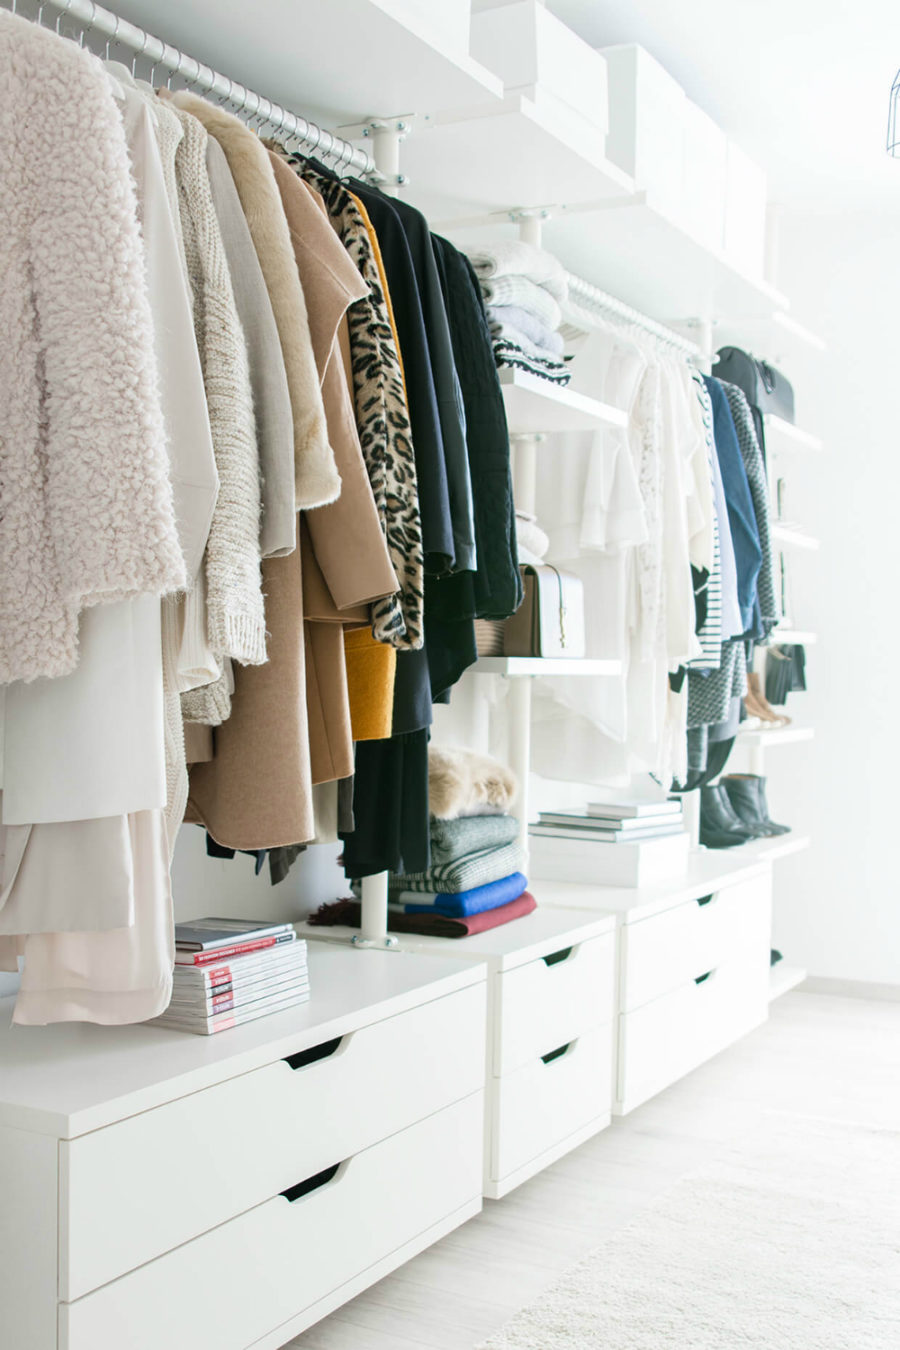 30 chic and modern open closet ideas for displaying your wardrobe shoproomideas - Closet ideas small spaces concept ...